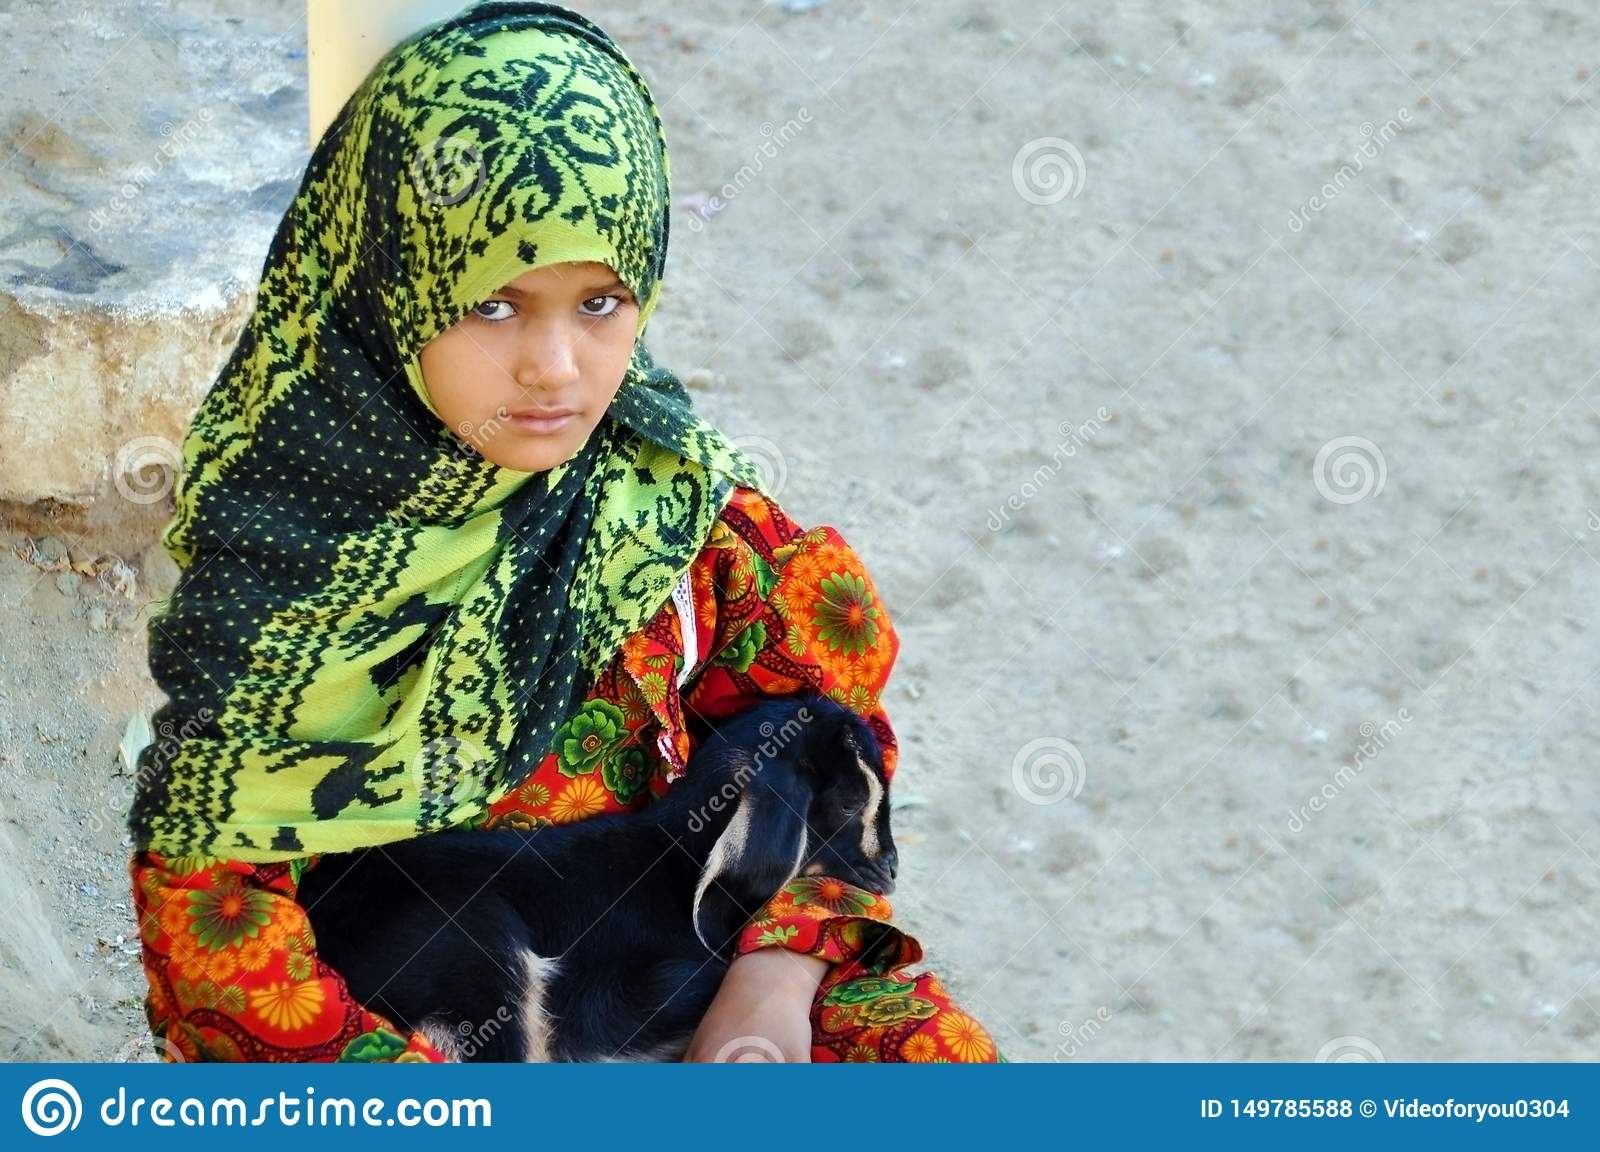 Egypt, October 22, 2012: A girl sits in a bright dress in a hijab with a baby goat in her arms